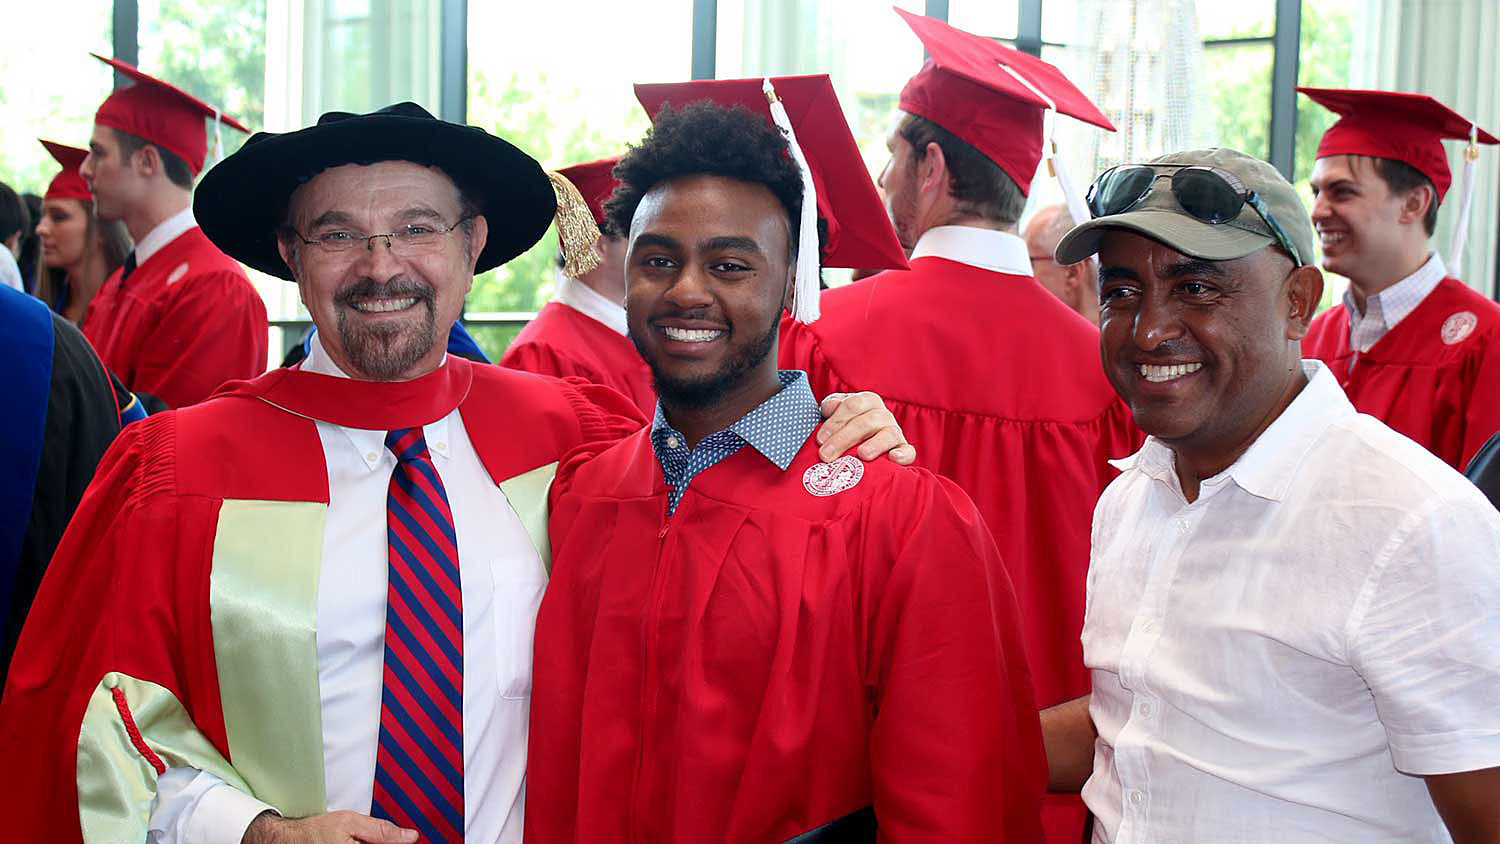 Red Cap and Gown - Admissions - College of Natural Resources NC State University